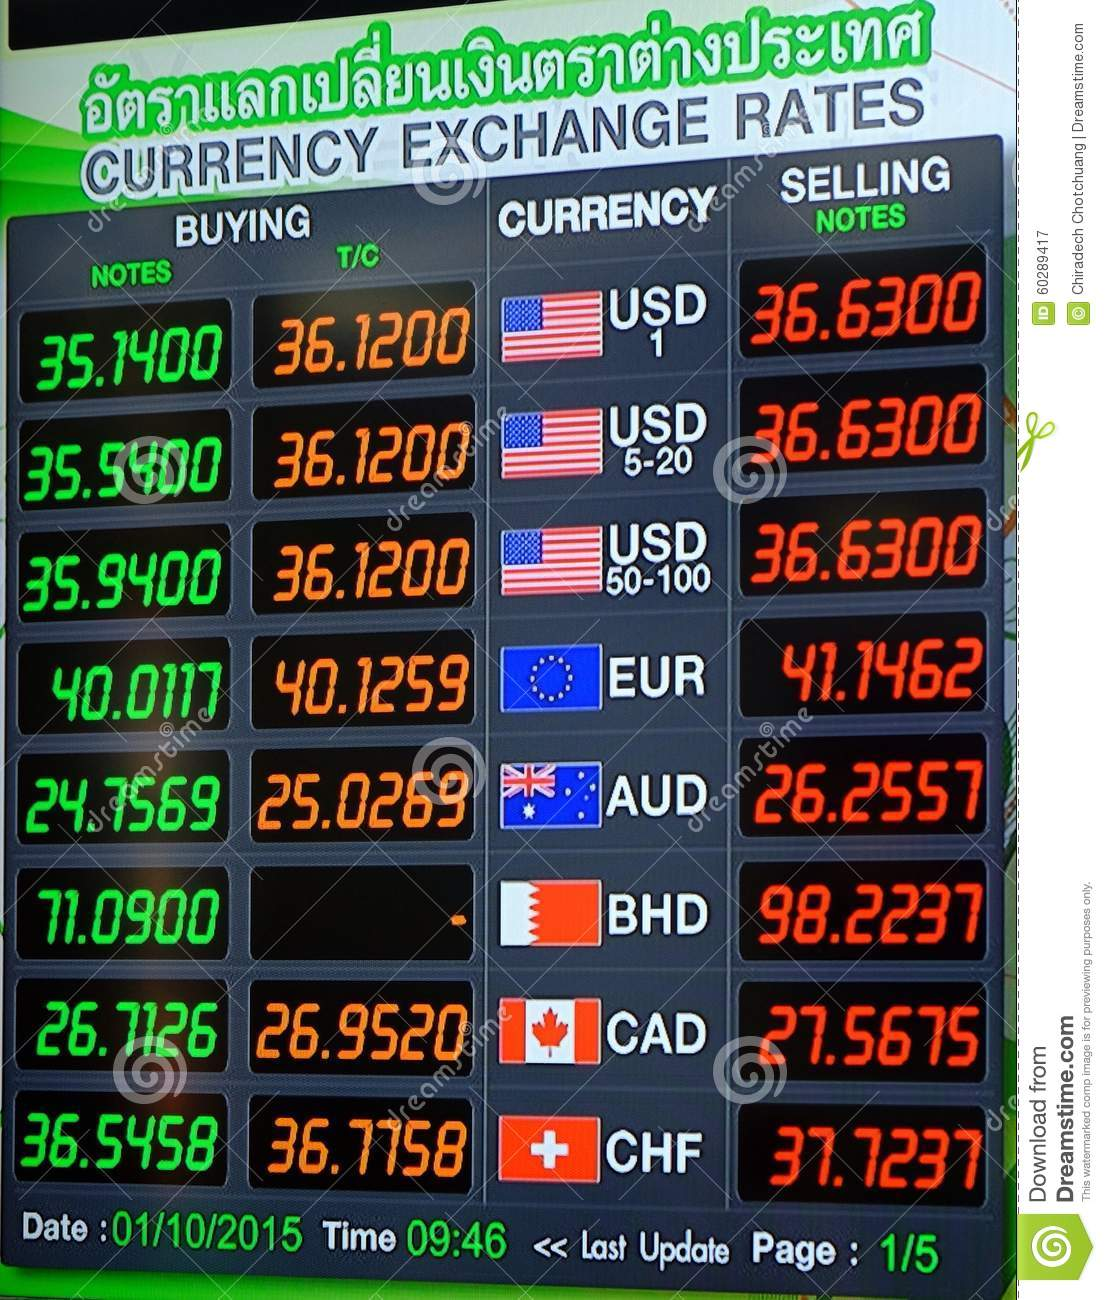 Currency trade rates